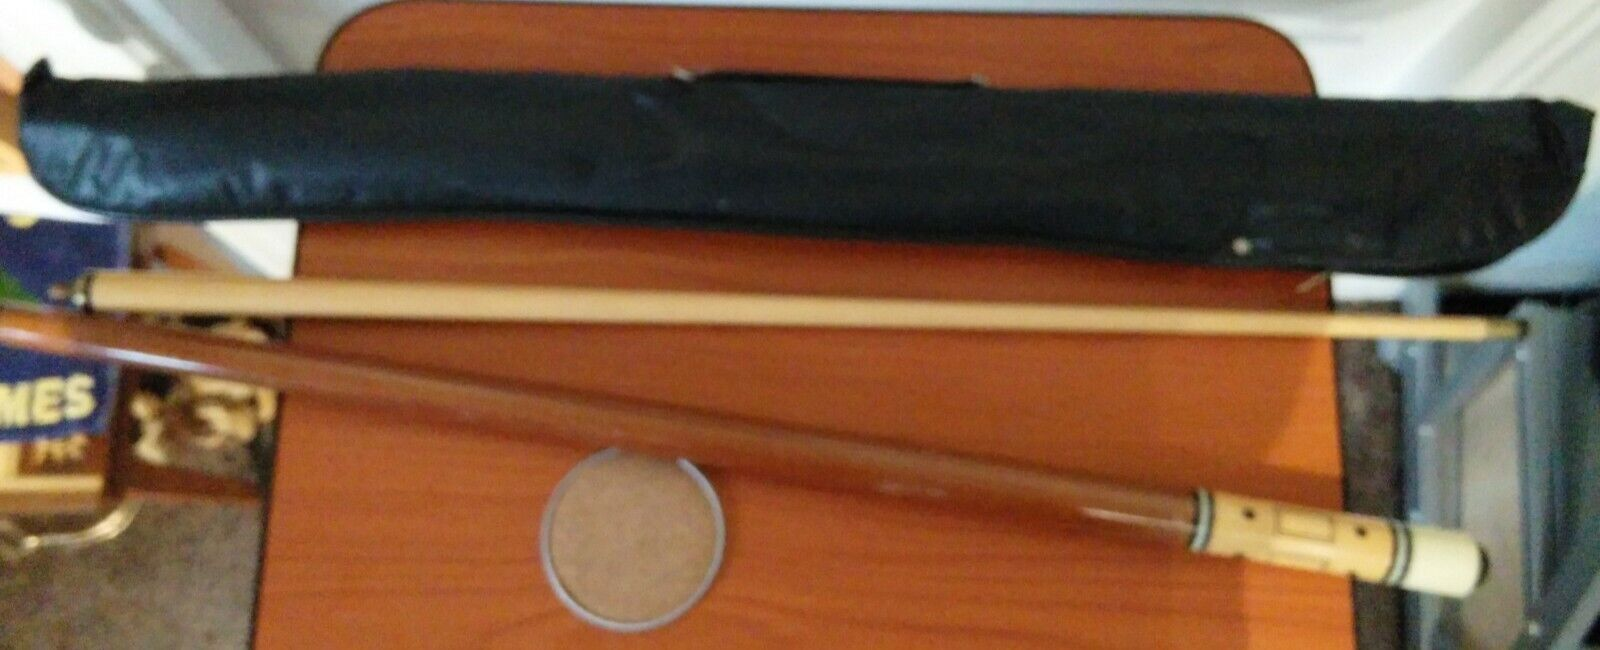 2 Piece Pool/Snooker Cue with case